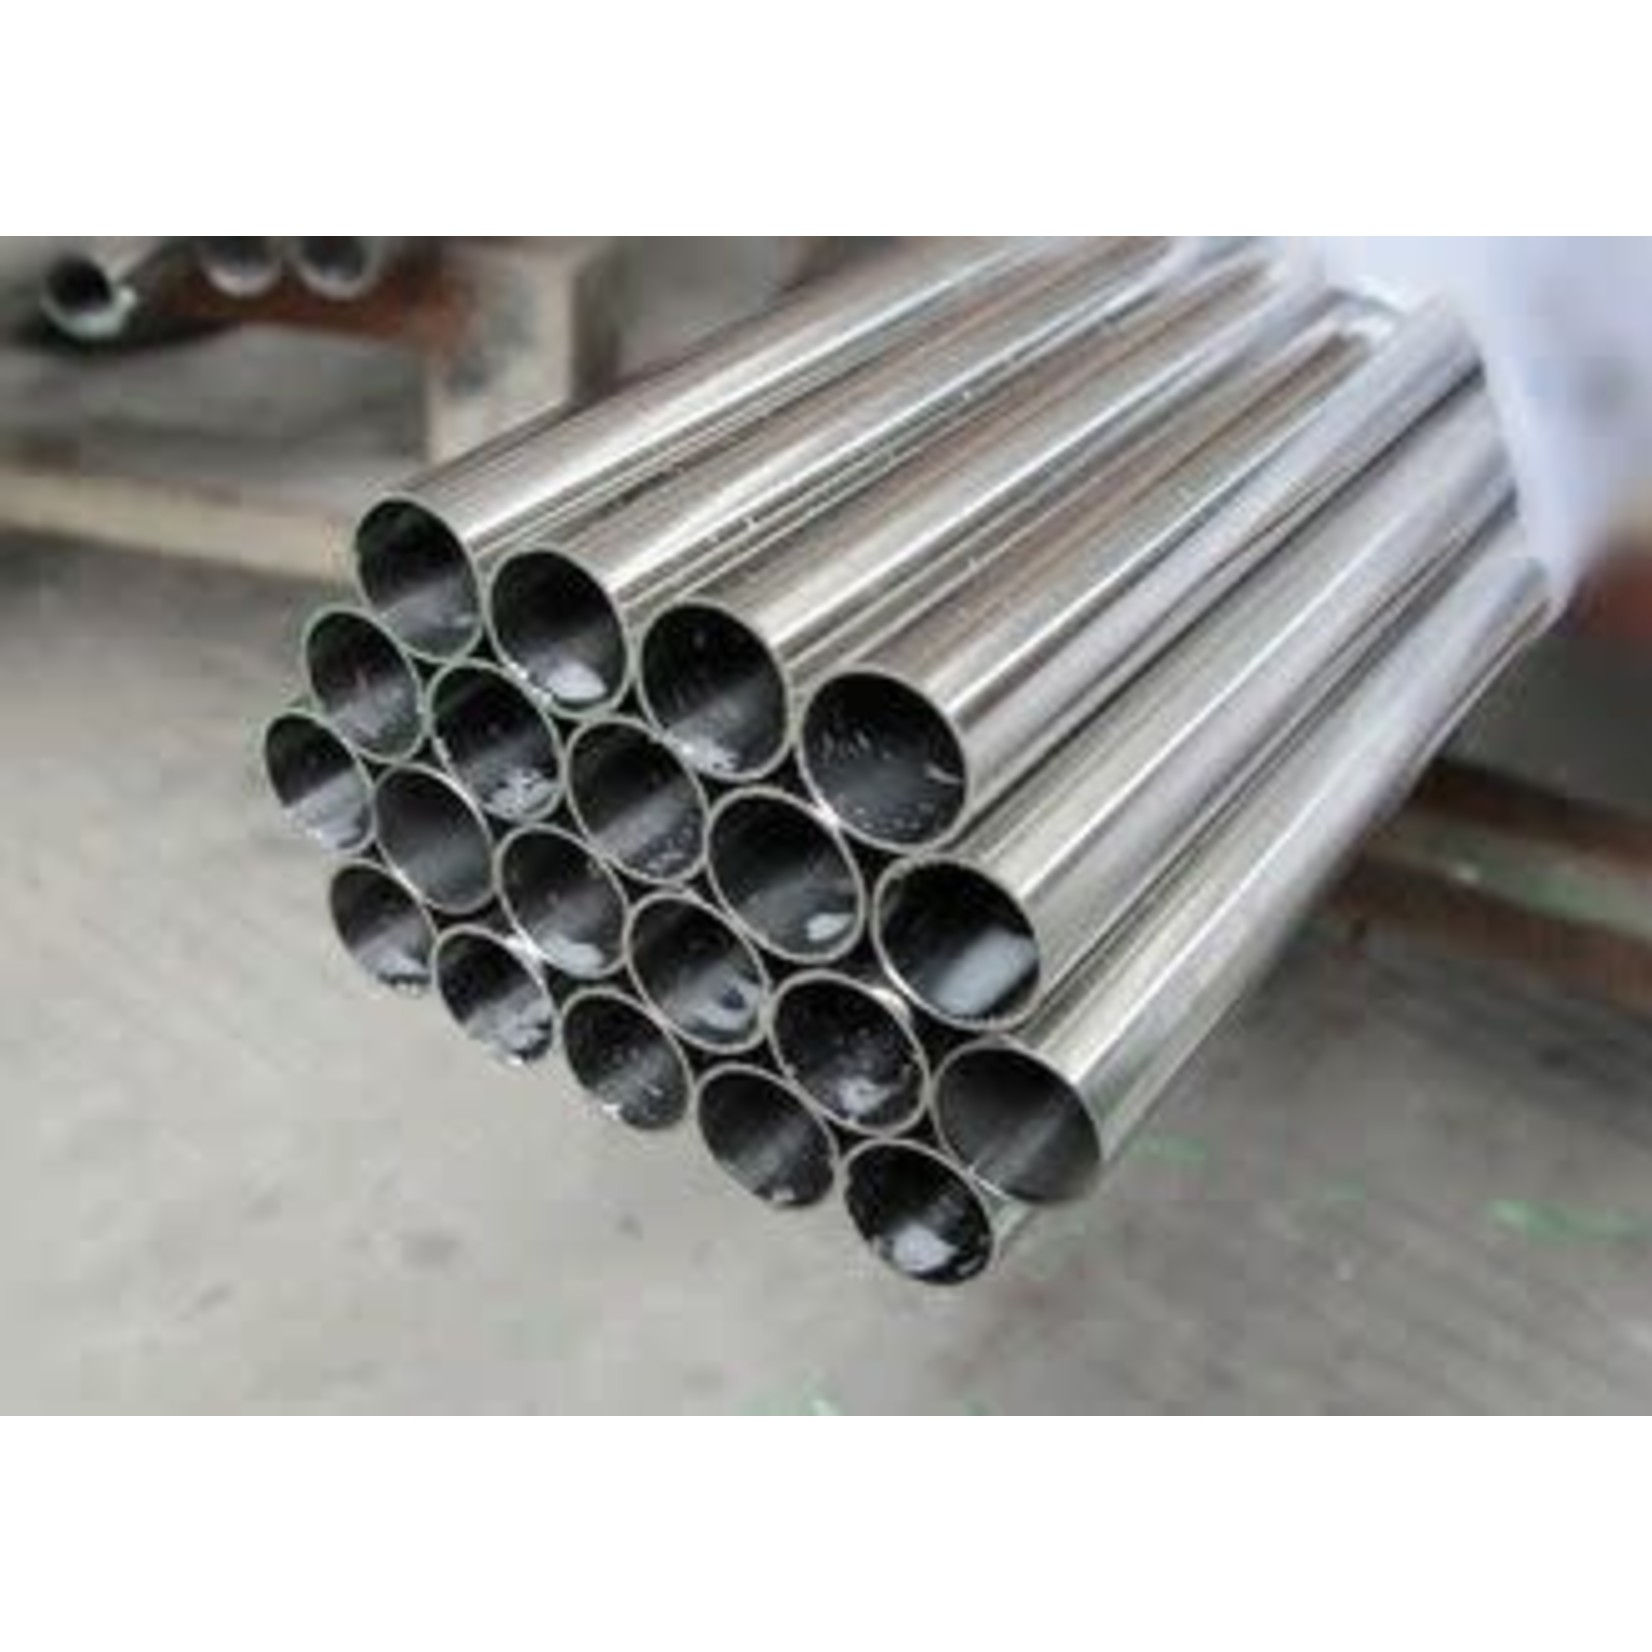 """WORLDWIDE 304SS TUBING SUPPLIERS 1-7/8"""" 304SS TUBING PER FOOT"""